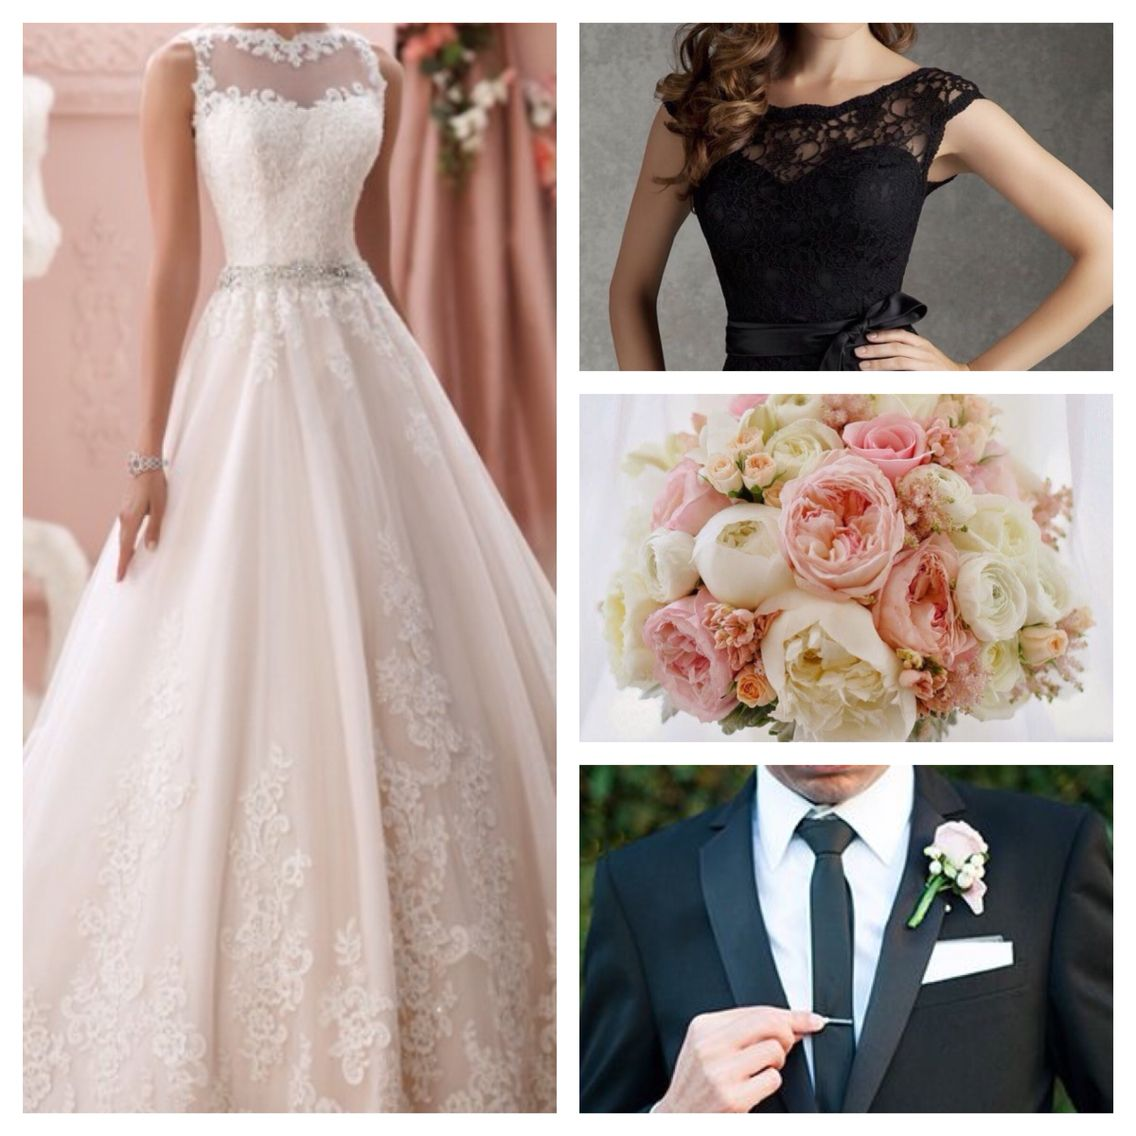 A David Tutera gown with a blush bouquet and black suits and bridesmaid dresses! Perfect combination! -Dream colors for a wedding!